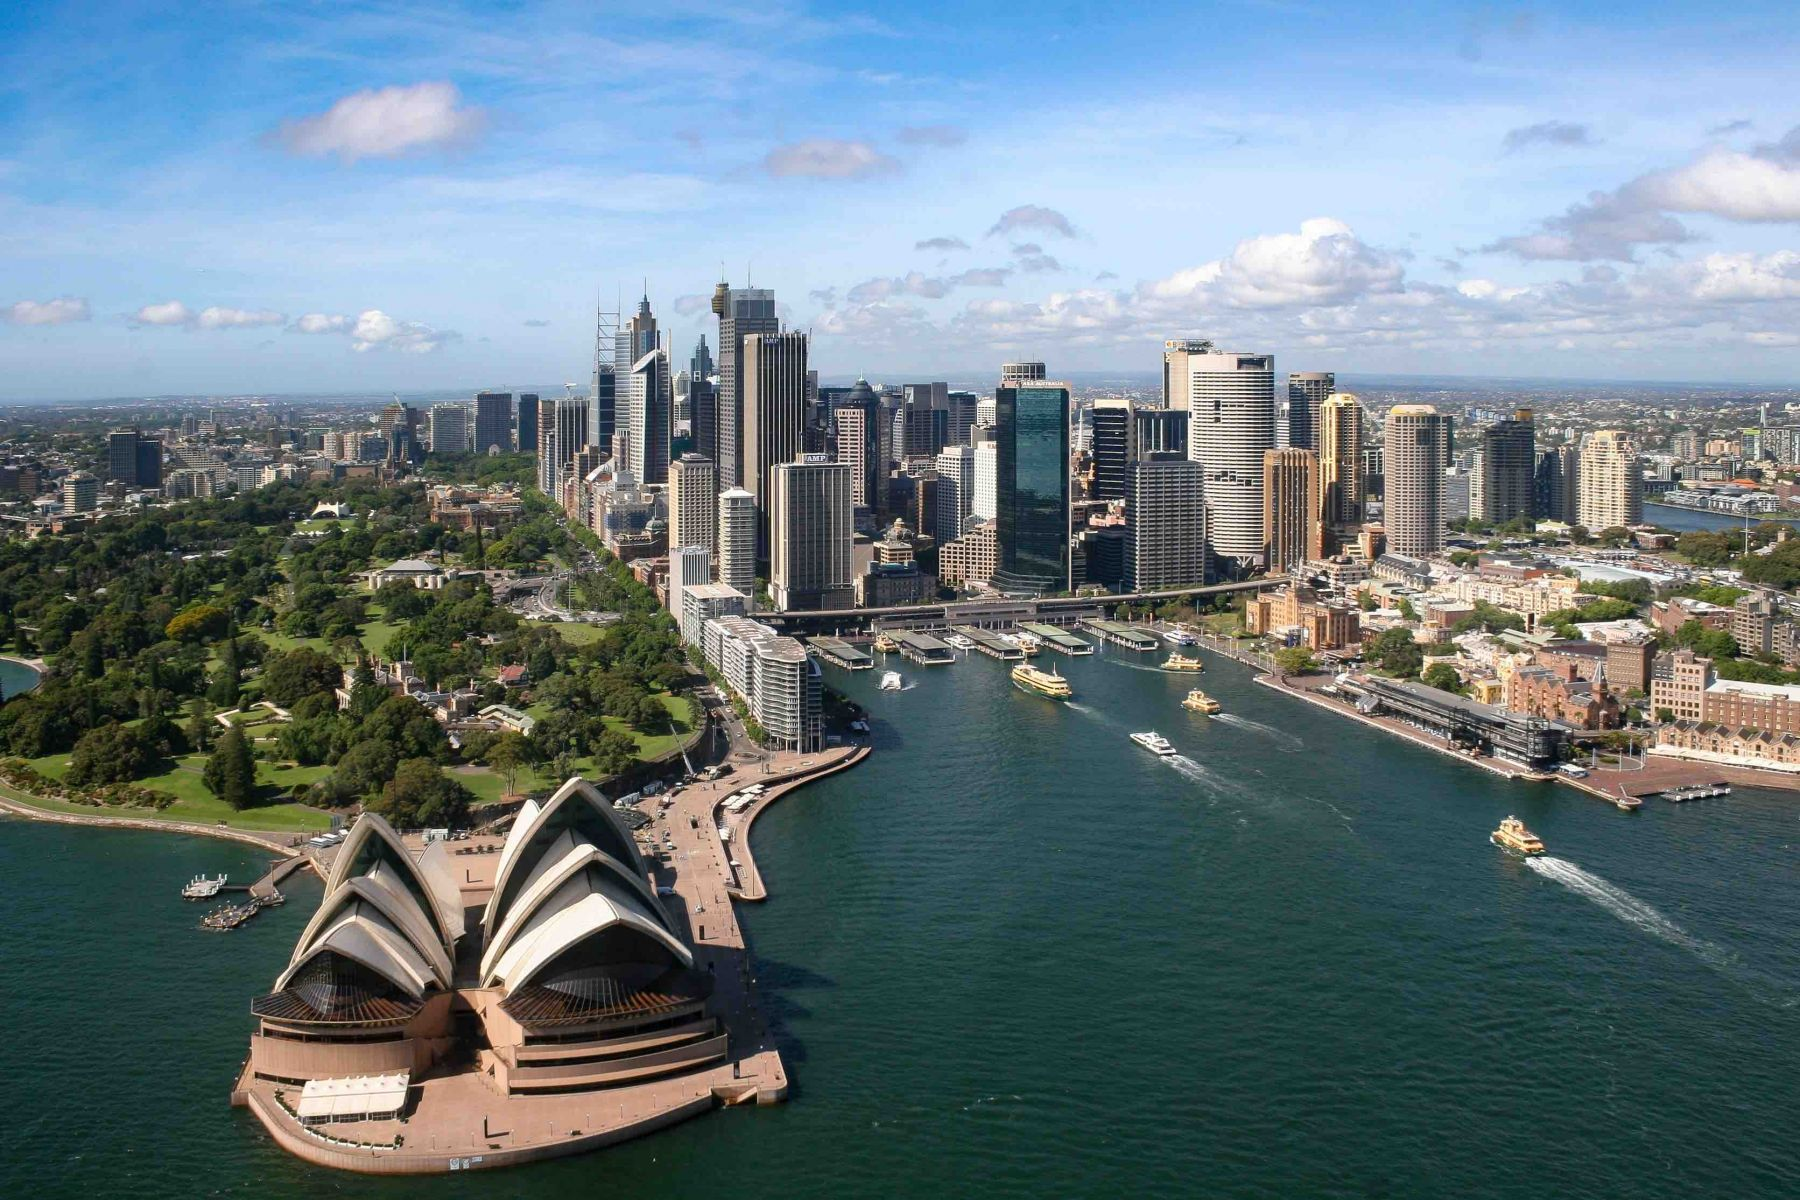 · Sydney is full of sights and you need far more than a day to visit just part of it. The main attractions are the Harbor Bridge, the Sydney Opera House and Bondi Beach.